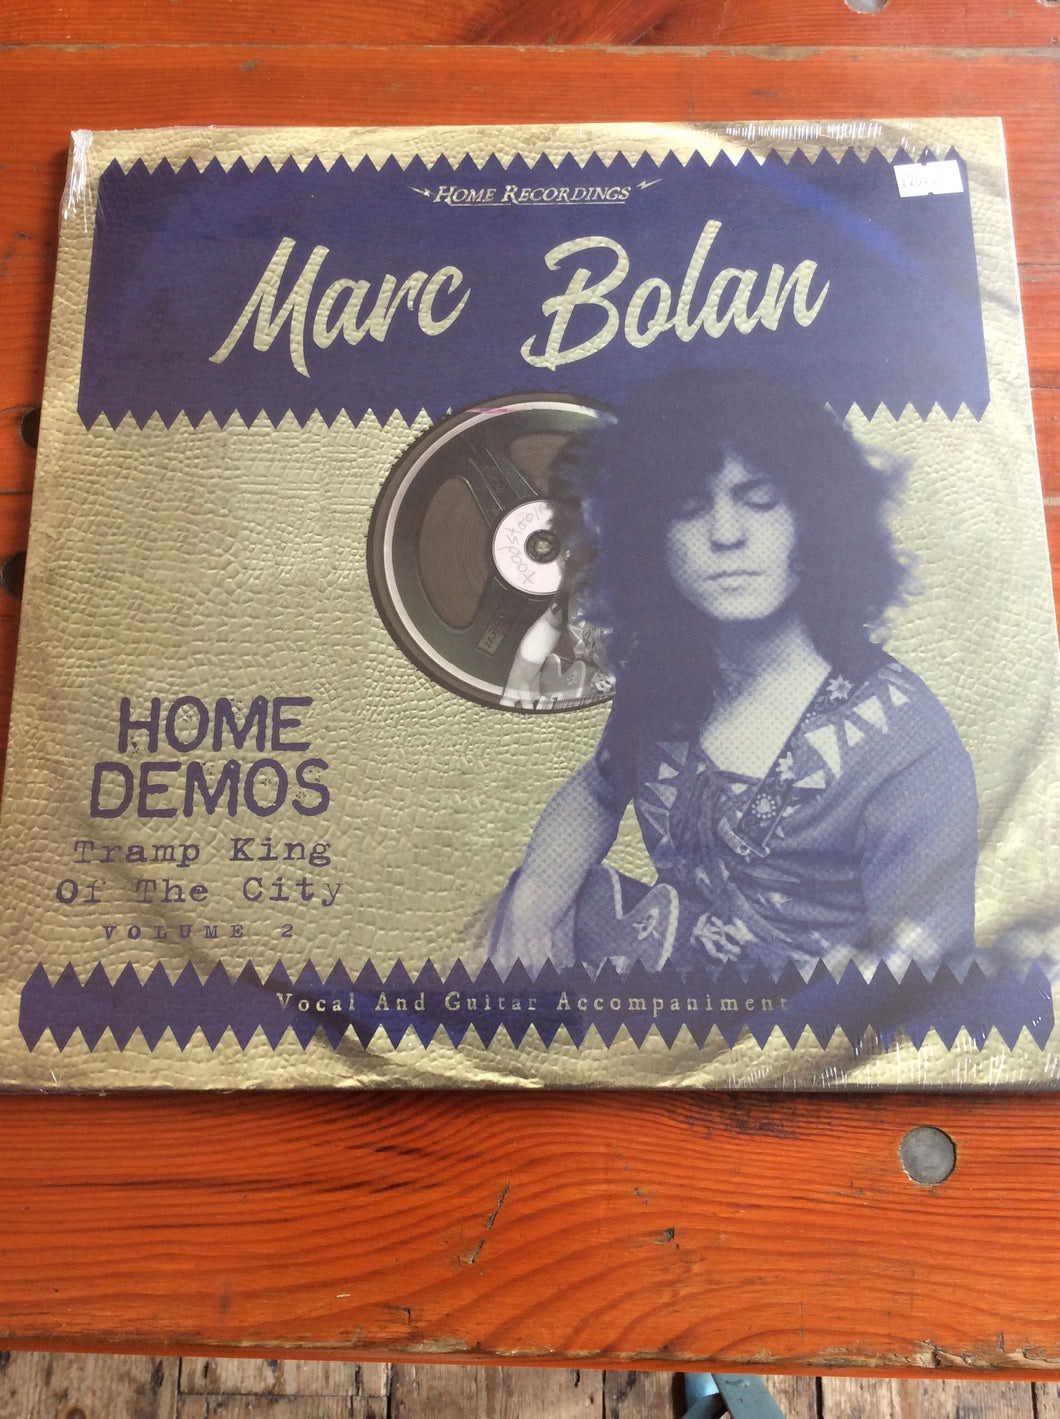 Marc Bolan - Tramp King Of the City : Home Demos Volume 2